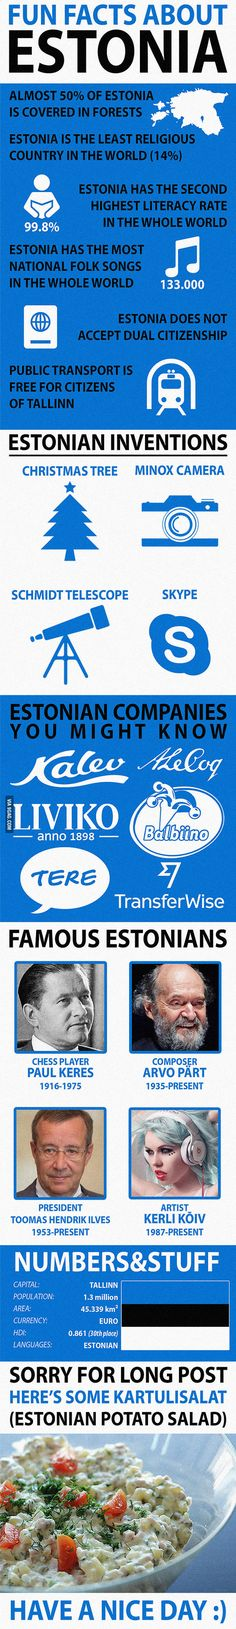 Fun Facts about Estonia